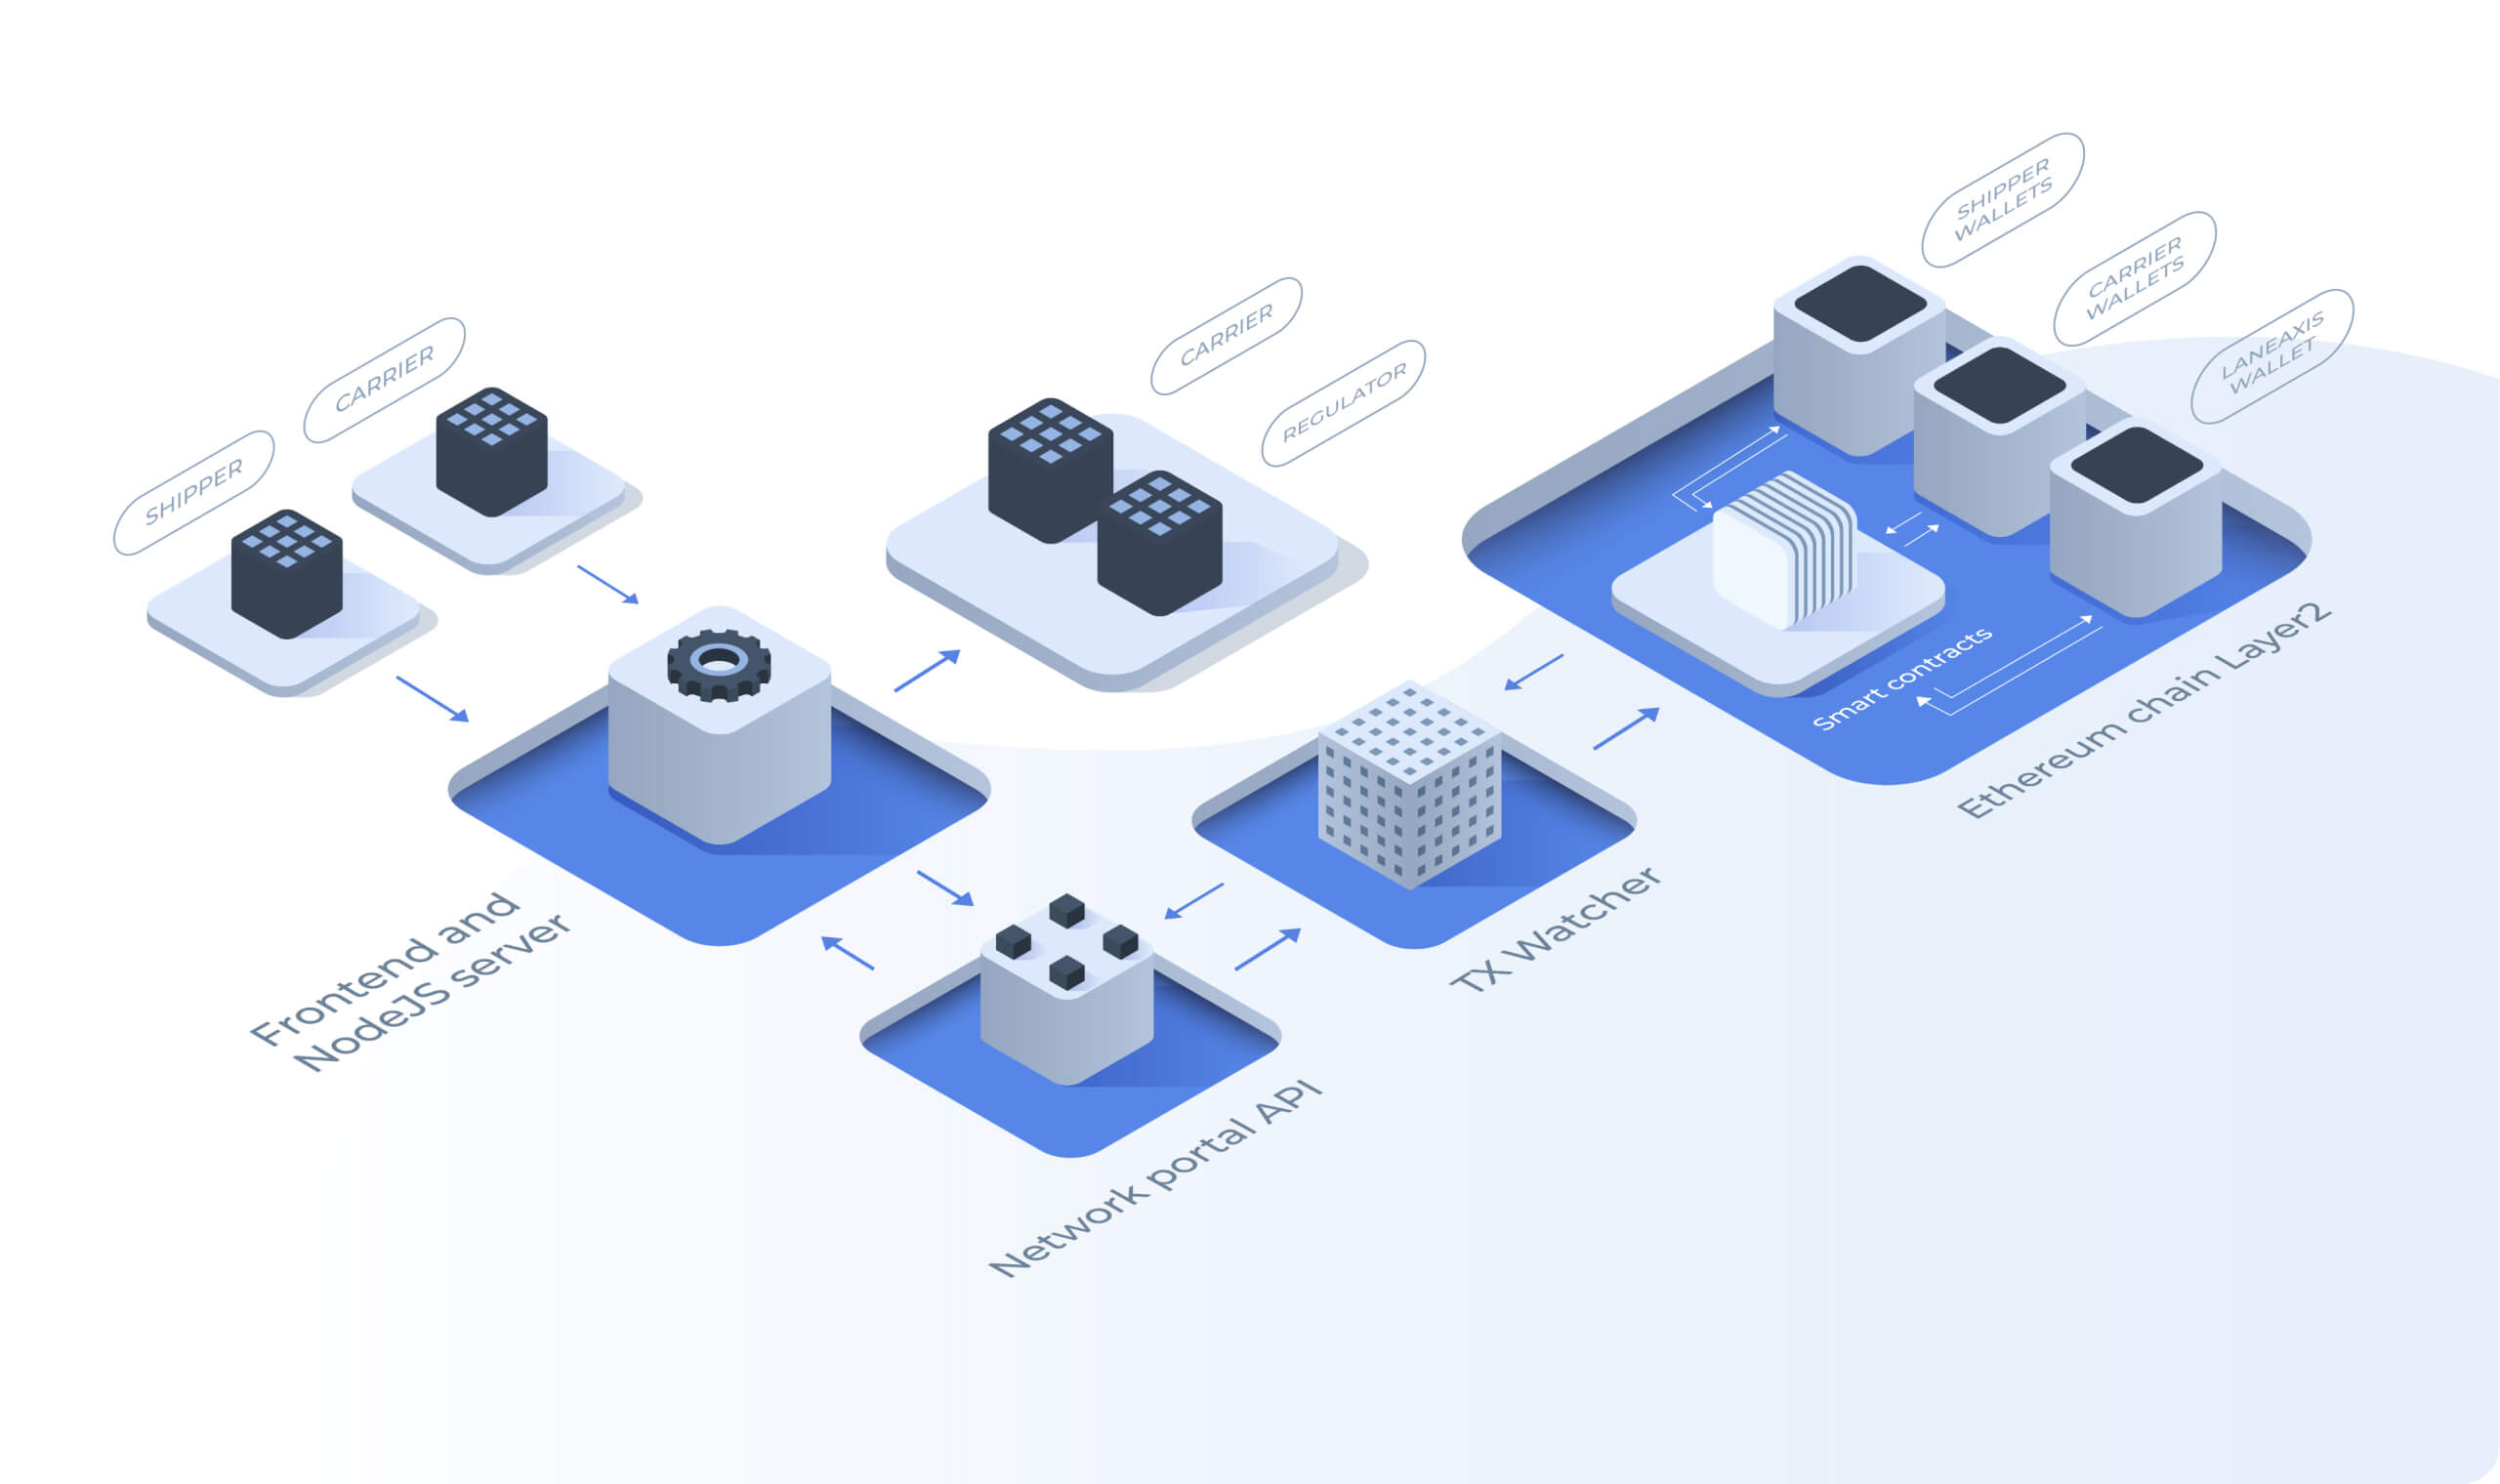 The scheme illustrating the blockchain ecosystem of the solution